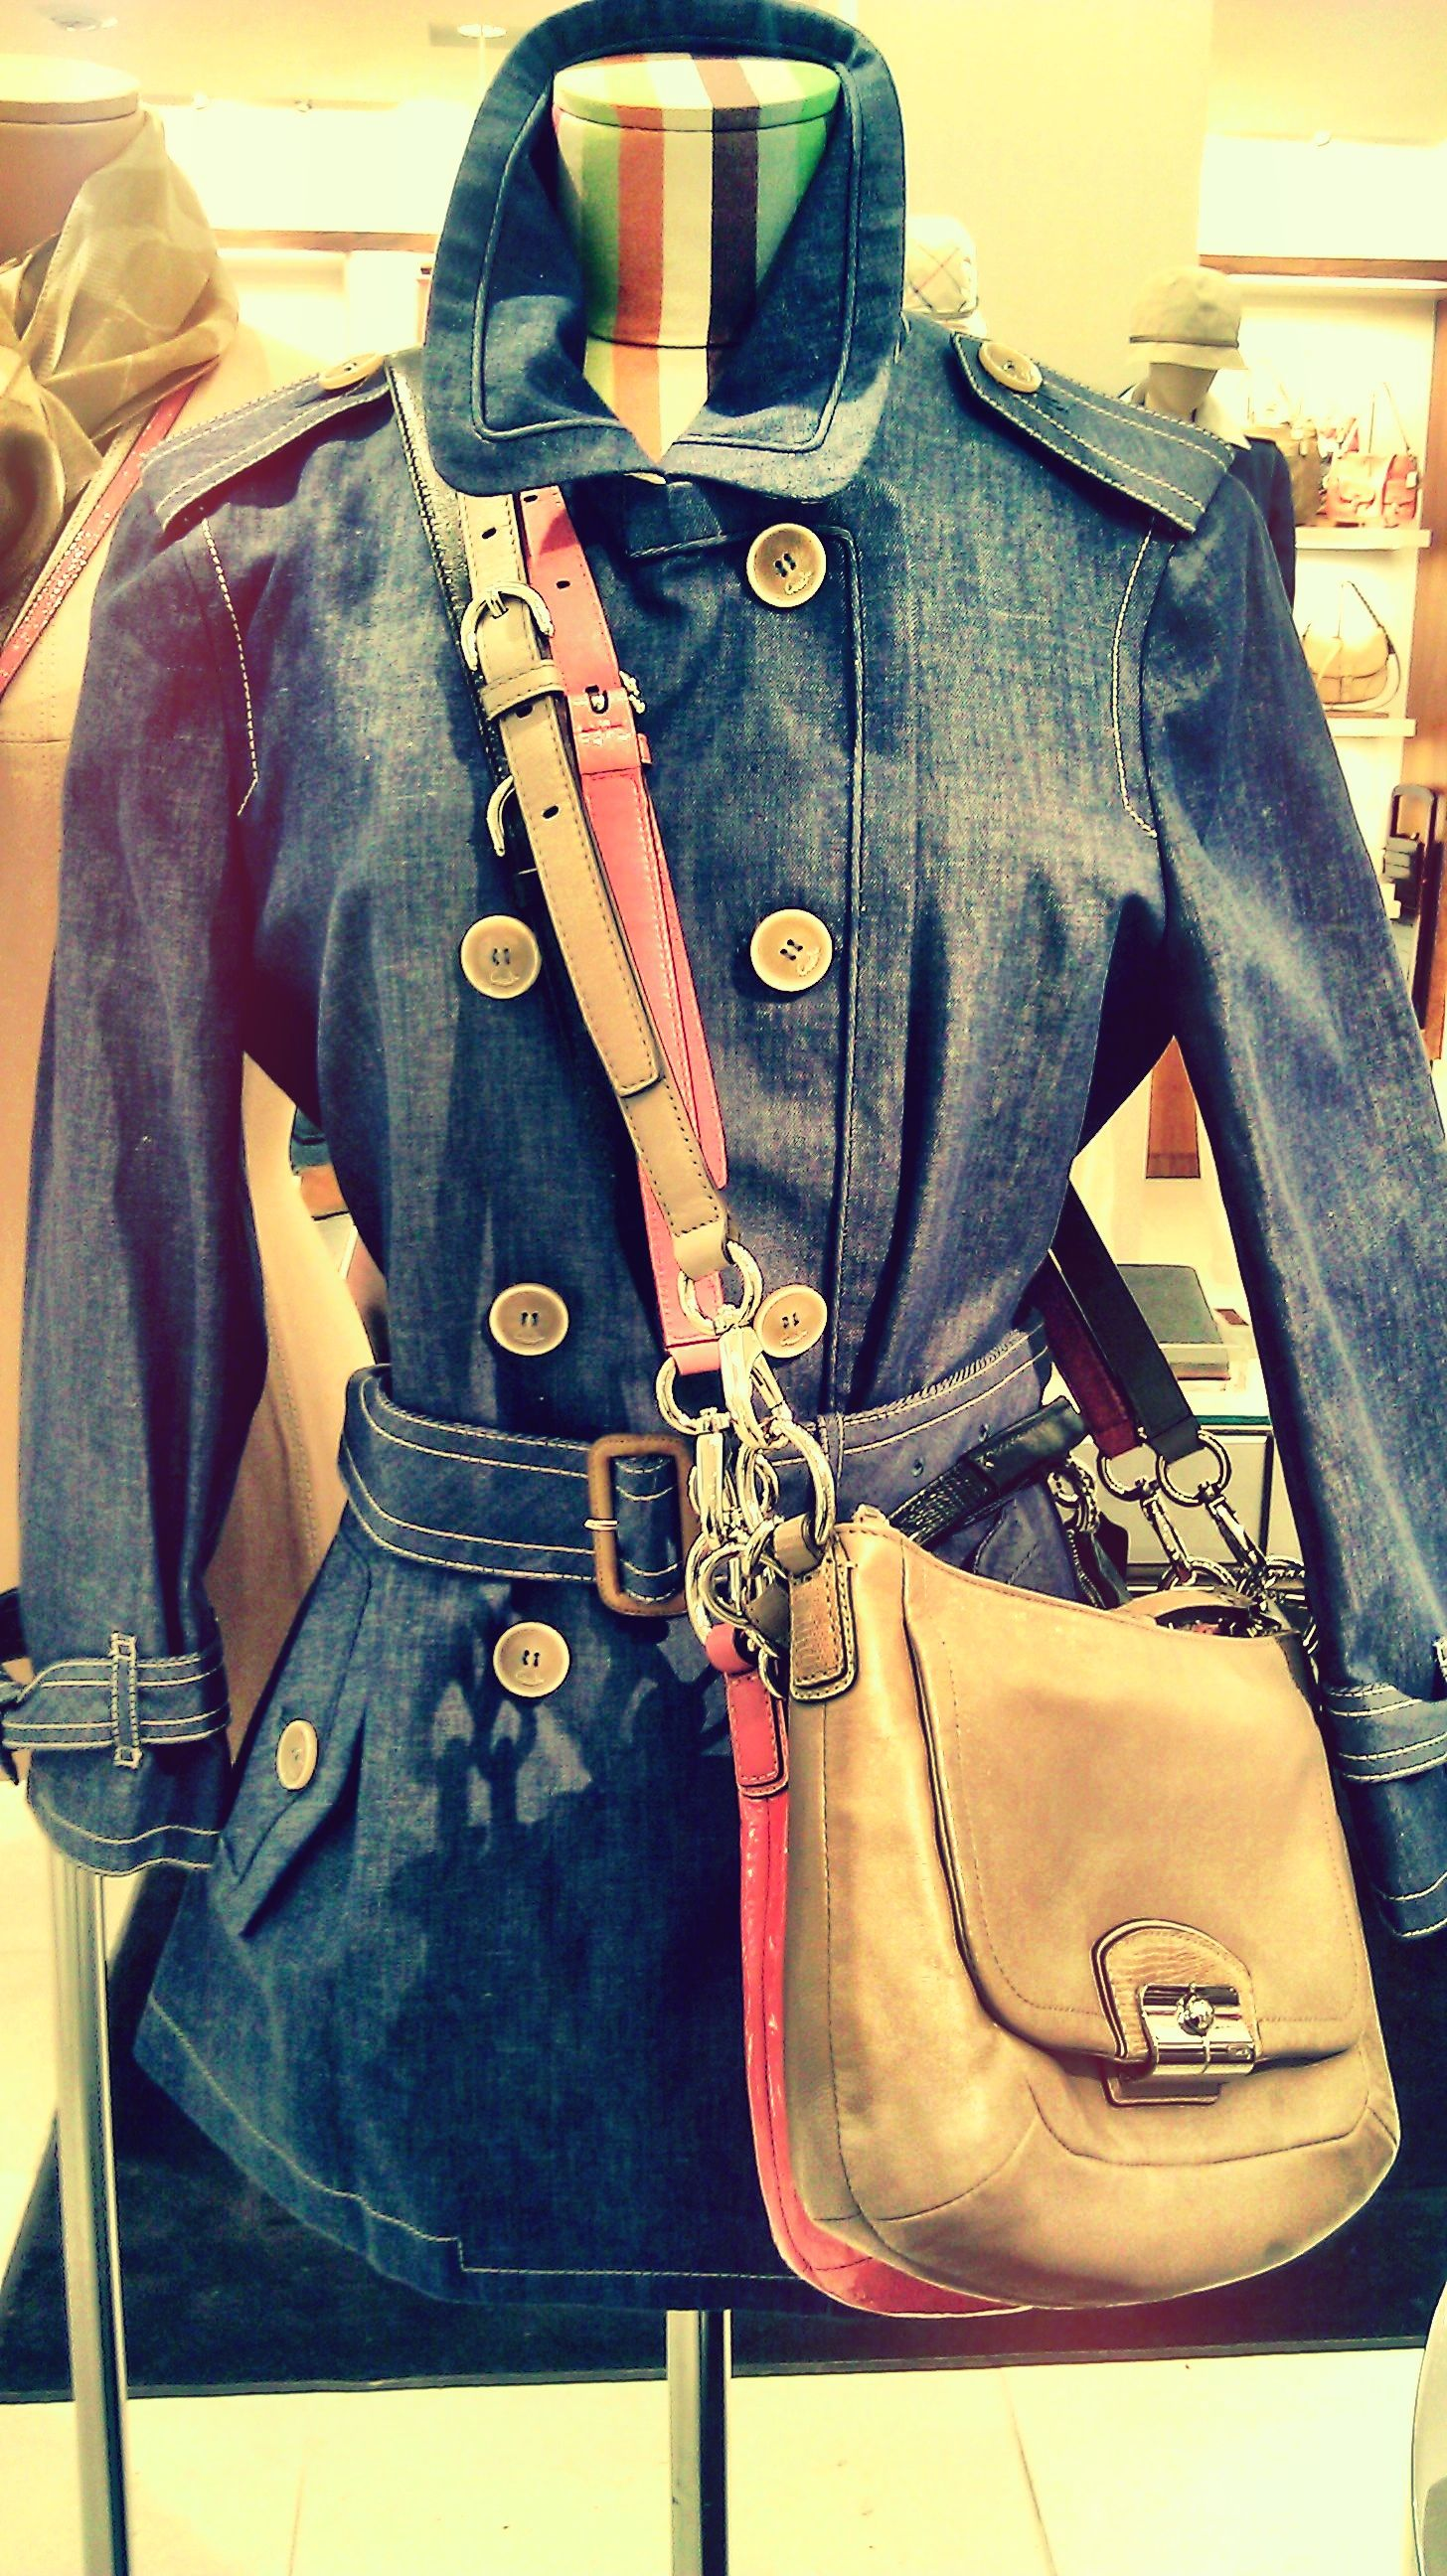 Coach Jean Jacket Seen At The Coach Store At The St Louis Galleria Mall My Own Photo Coach Fashion Coach Store My Style [ 2592 x 1456 Pixel ]